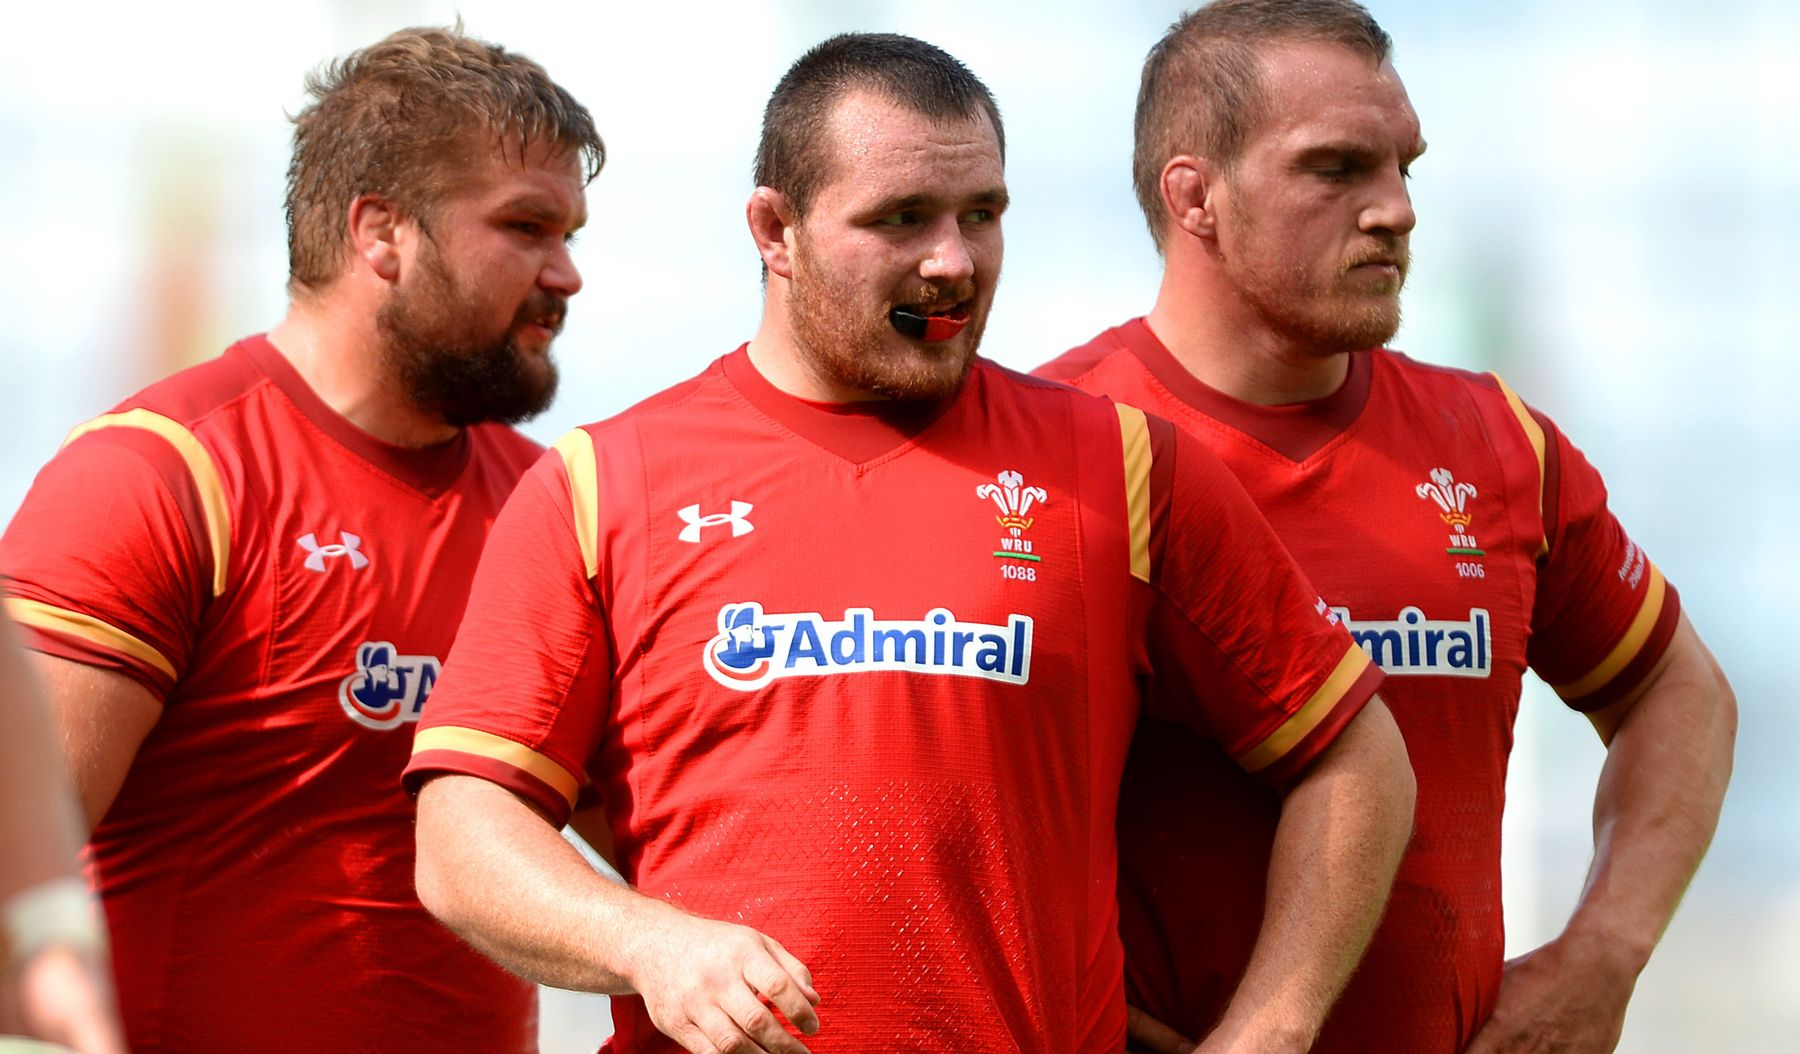 Bumps, bruises and selection – Gatland's toughest 24 hours